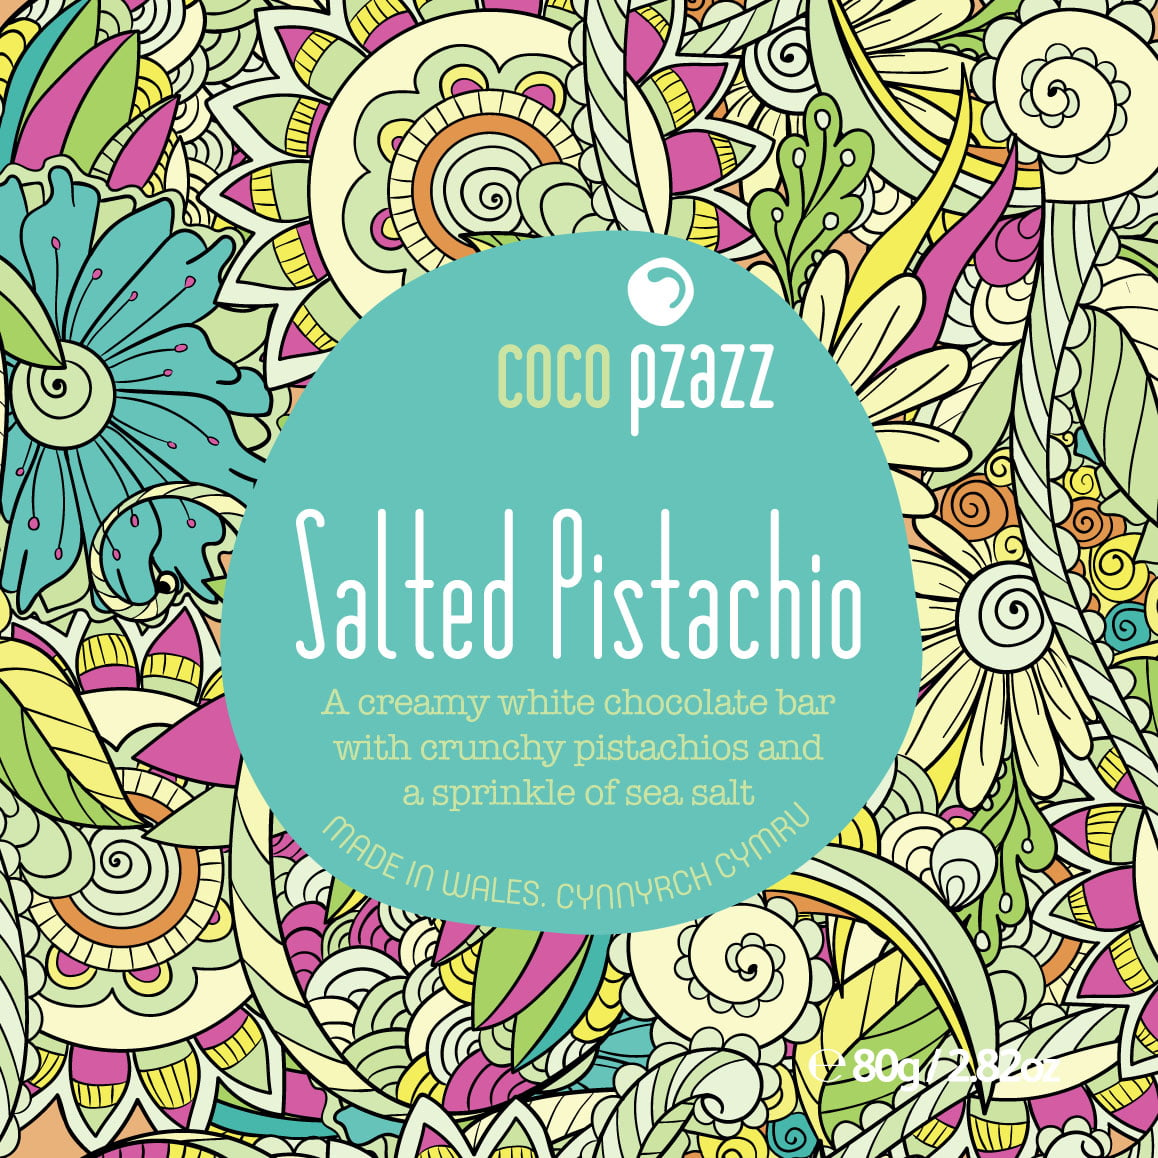 Coco Pzazz Bars (inc. Vegan Bars)